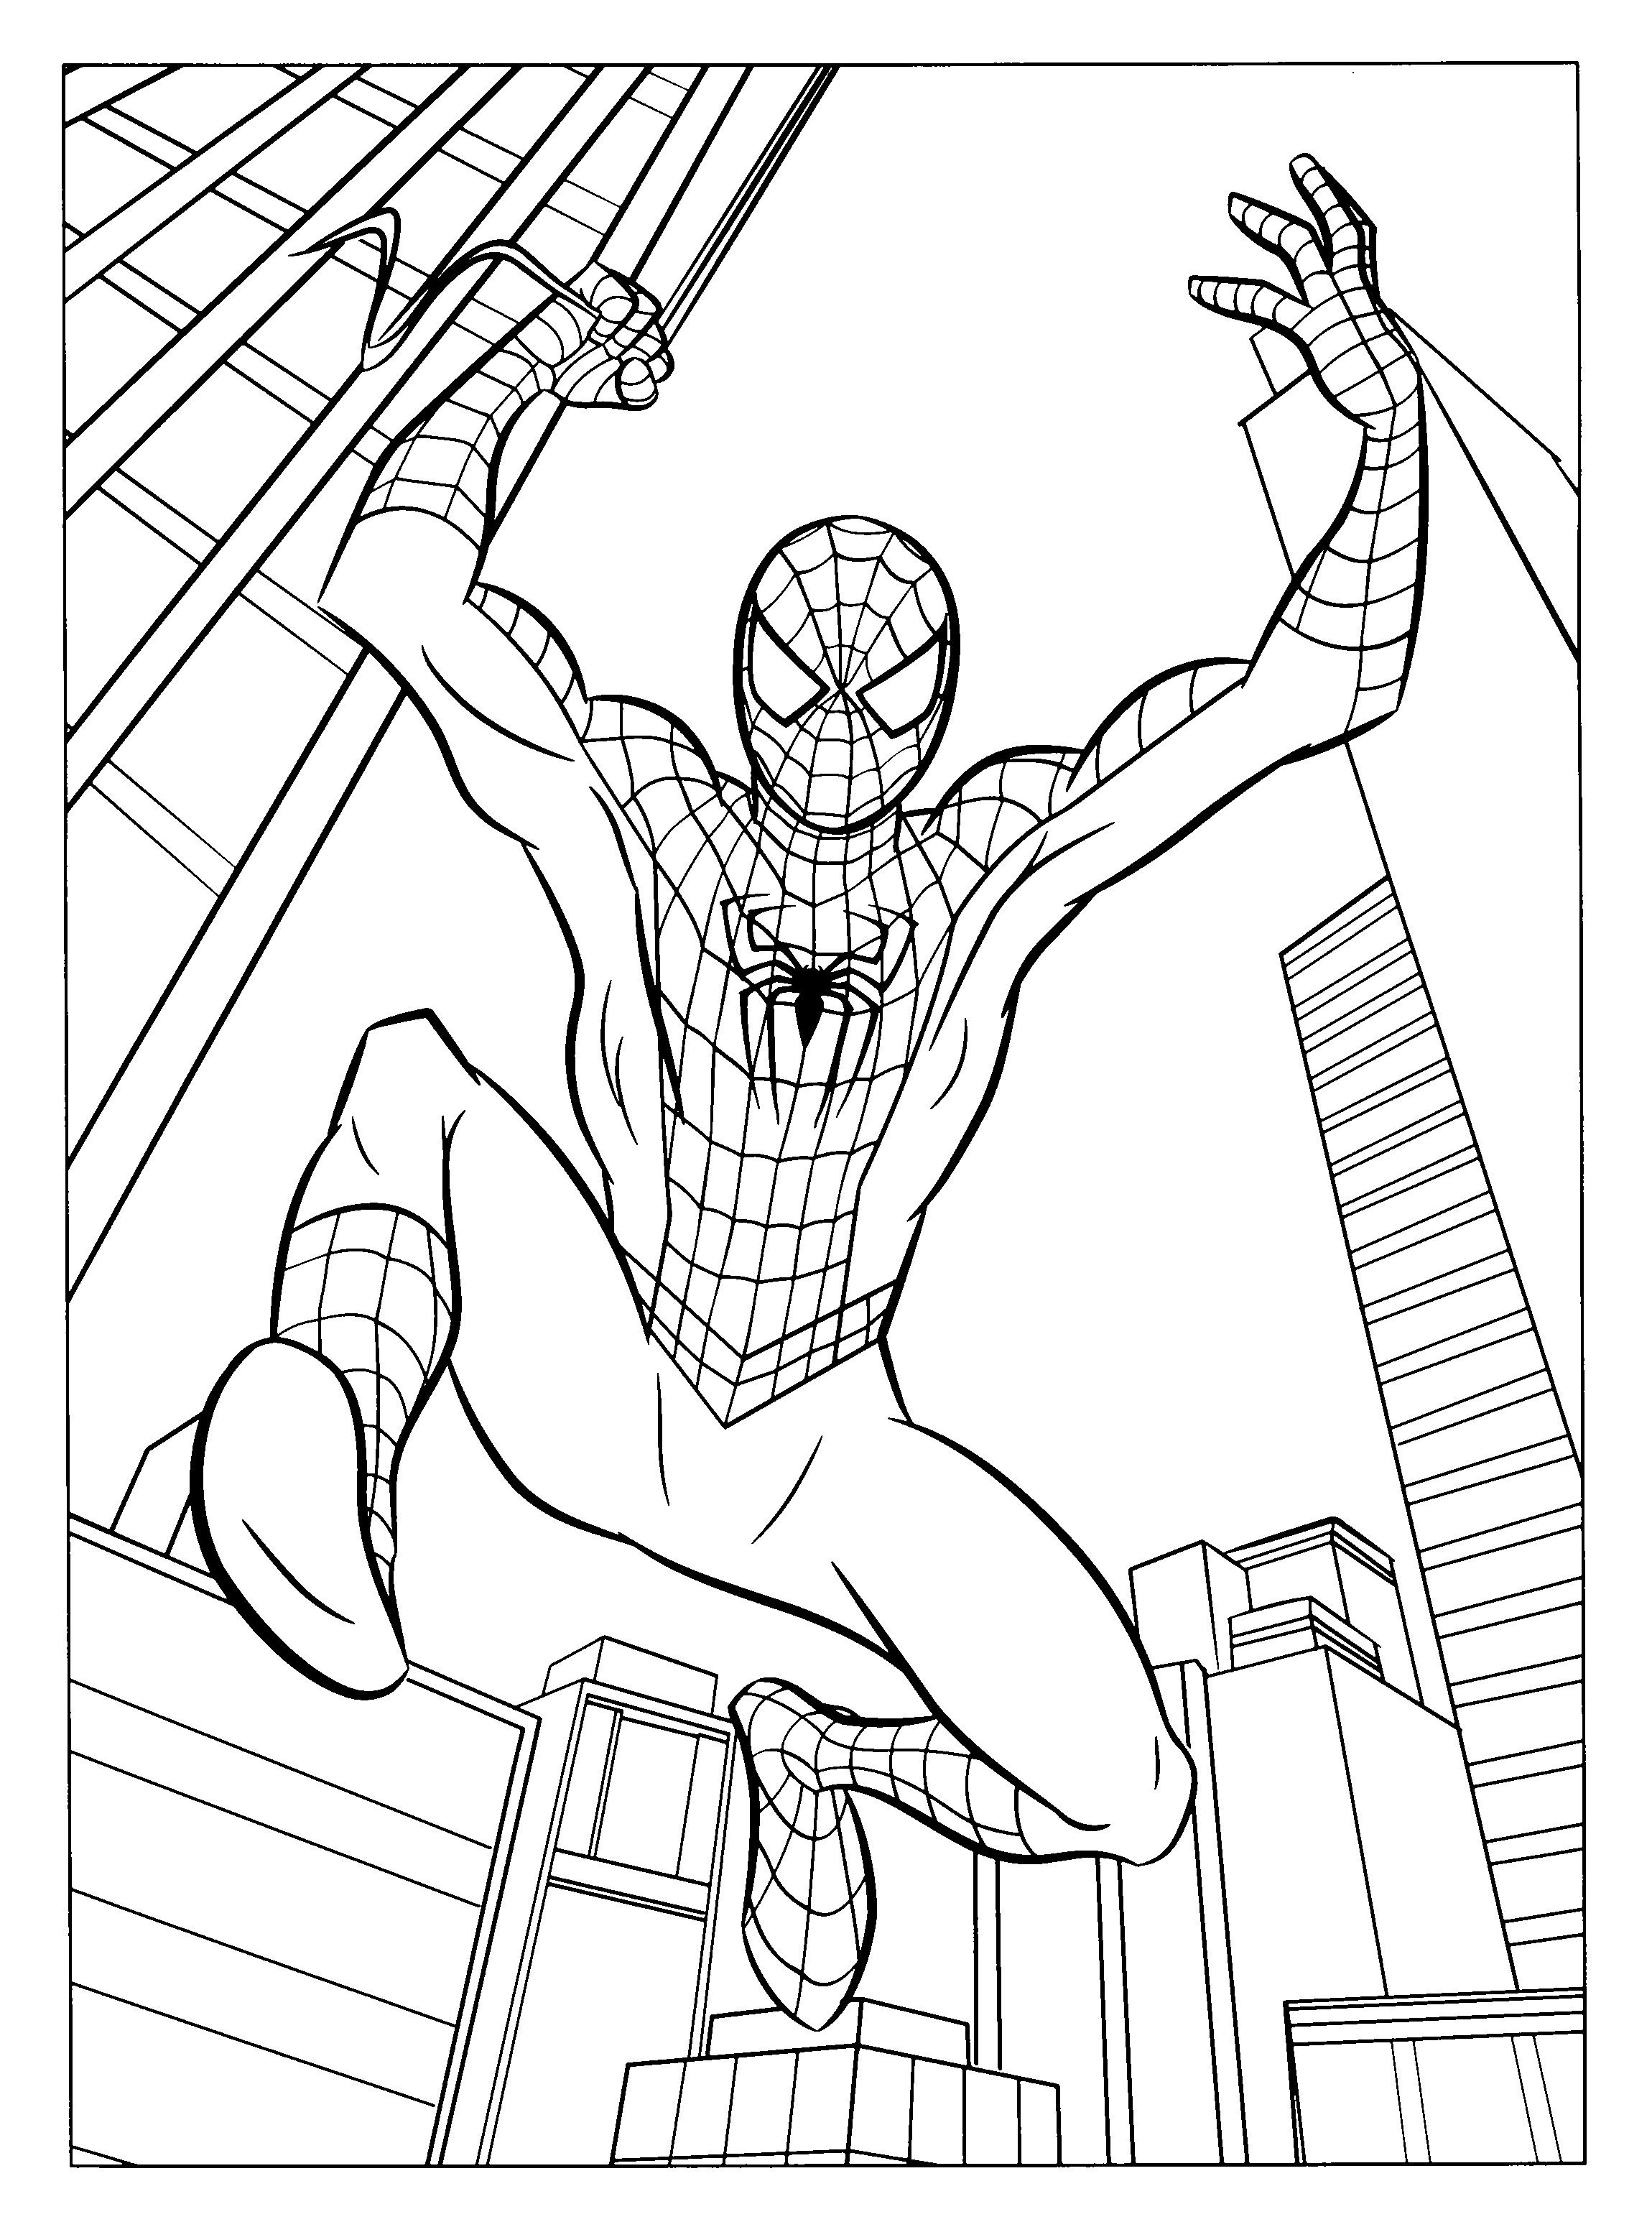 Free Printable Spiderman Coloring Pages For Kids Superhero Coloring Pages Batman Coloring Pages Avengers Coloring Pages